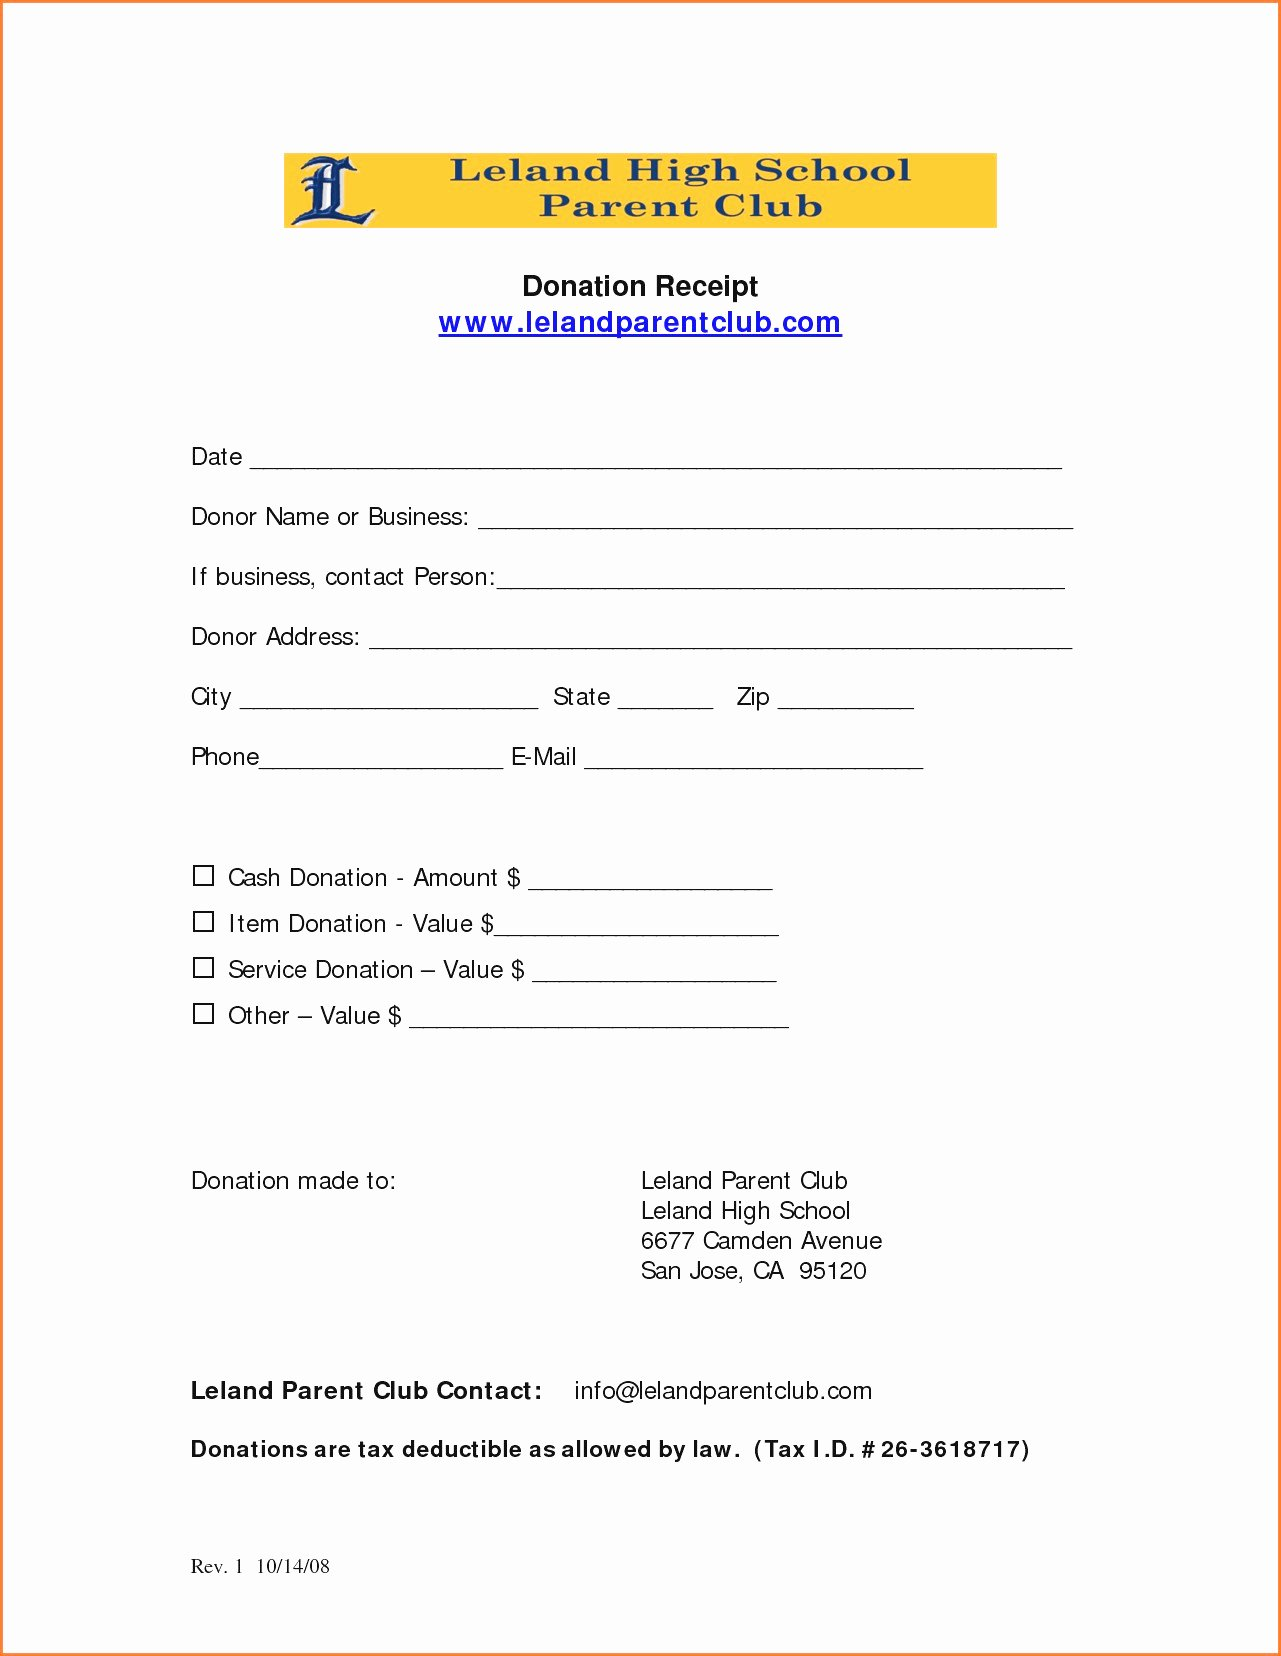 Church Donation Receipt Template Elegant Church Donation Receipt Template 0 Colorium Laboratorium